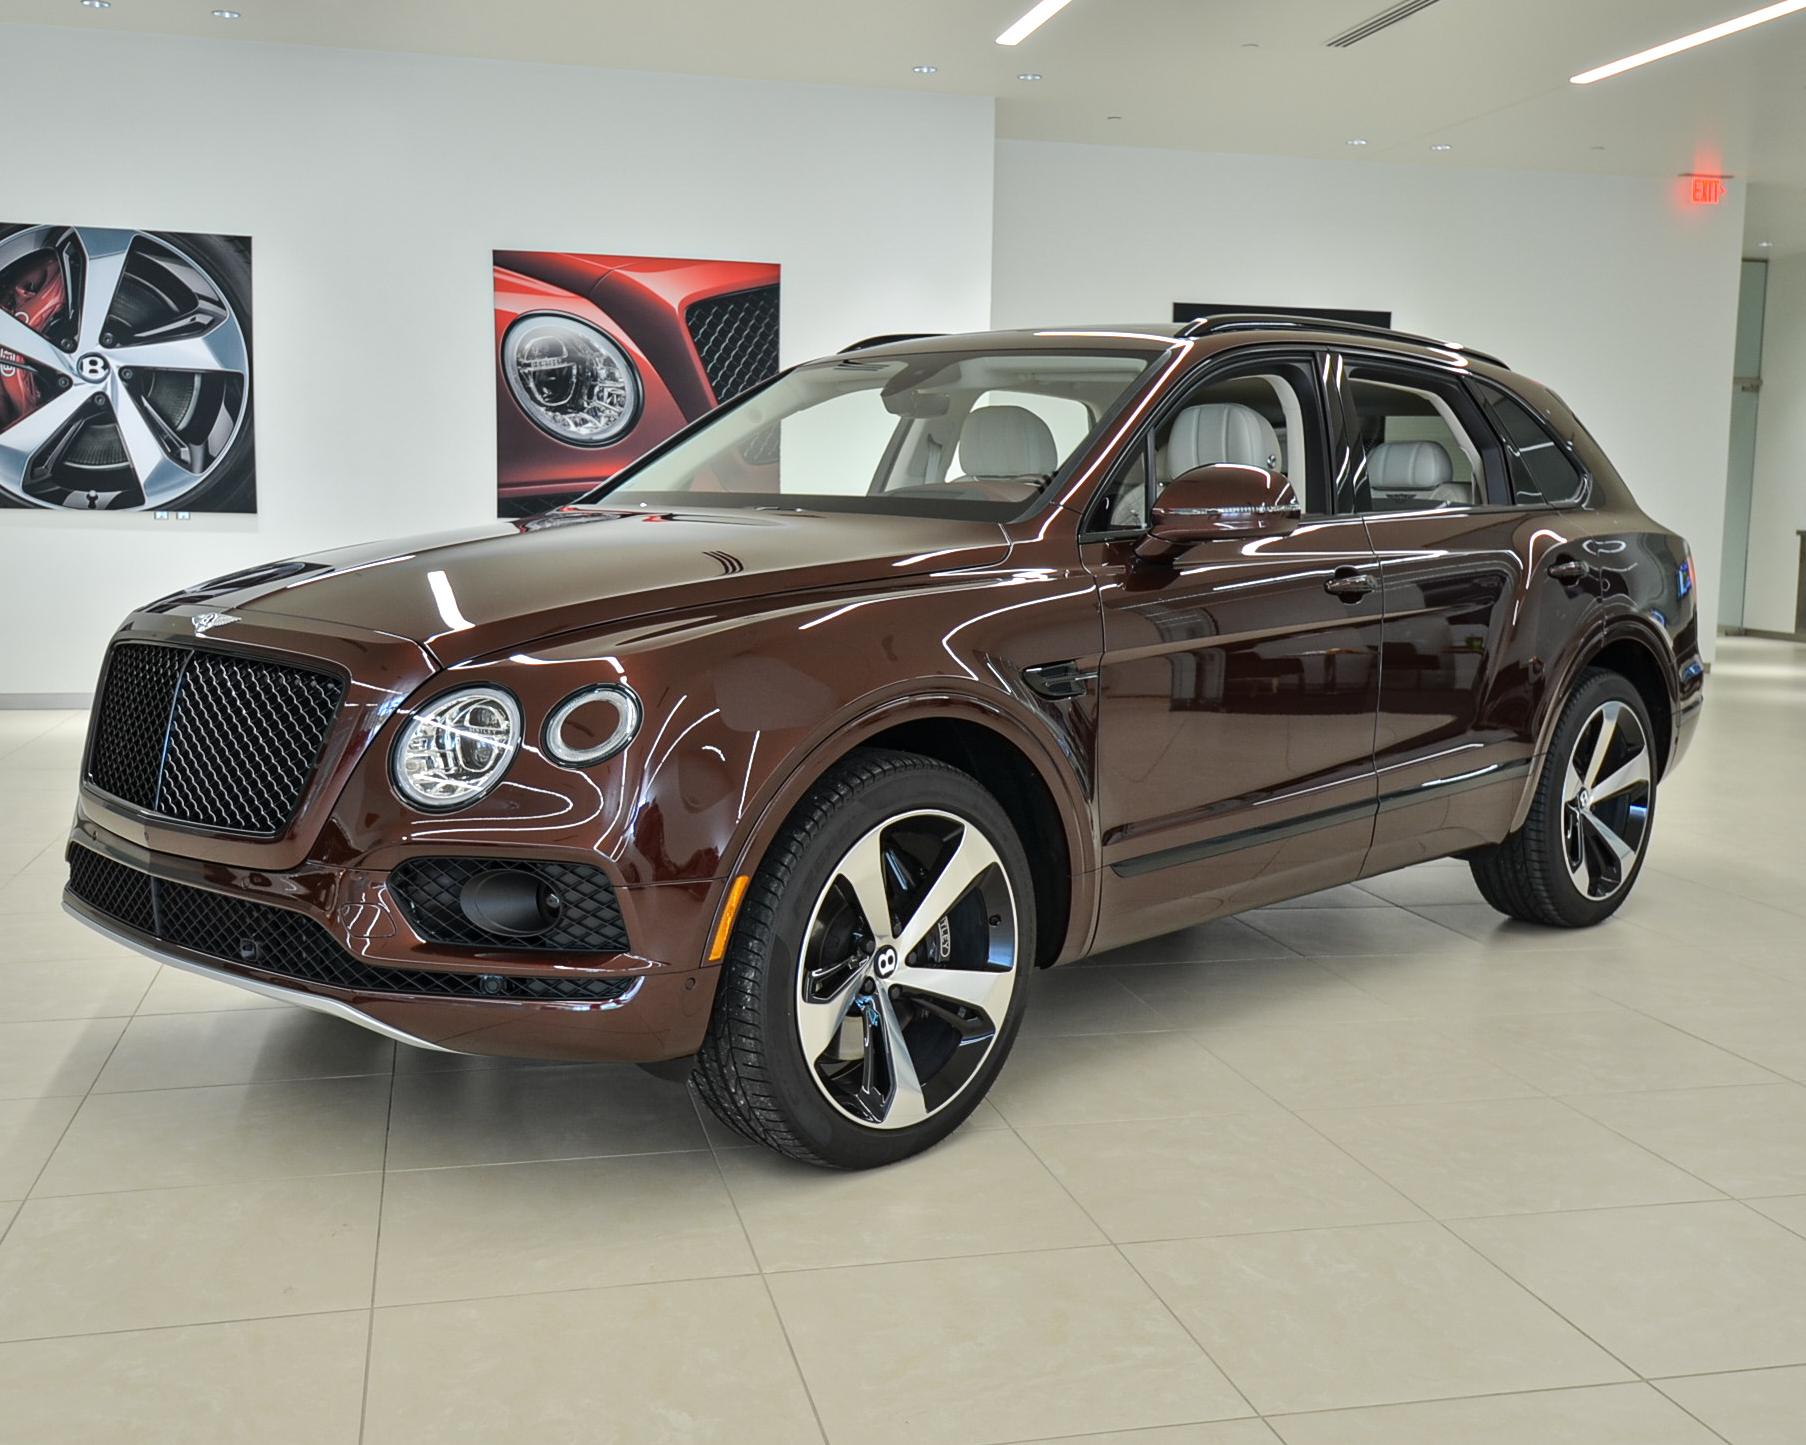 Bentley Bentayga For Sale >> Woodhouse Used 2019 Bentley Bentayga For Sale Bentley